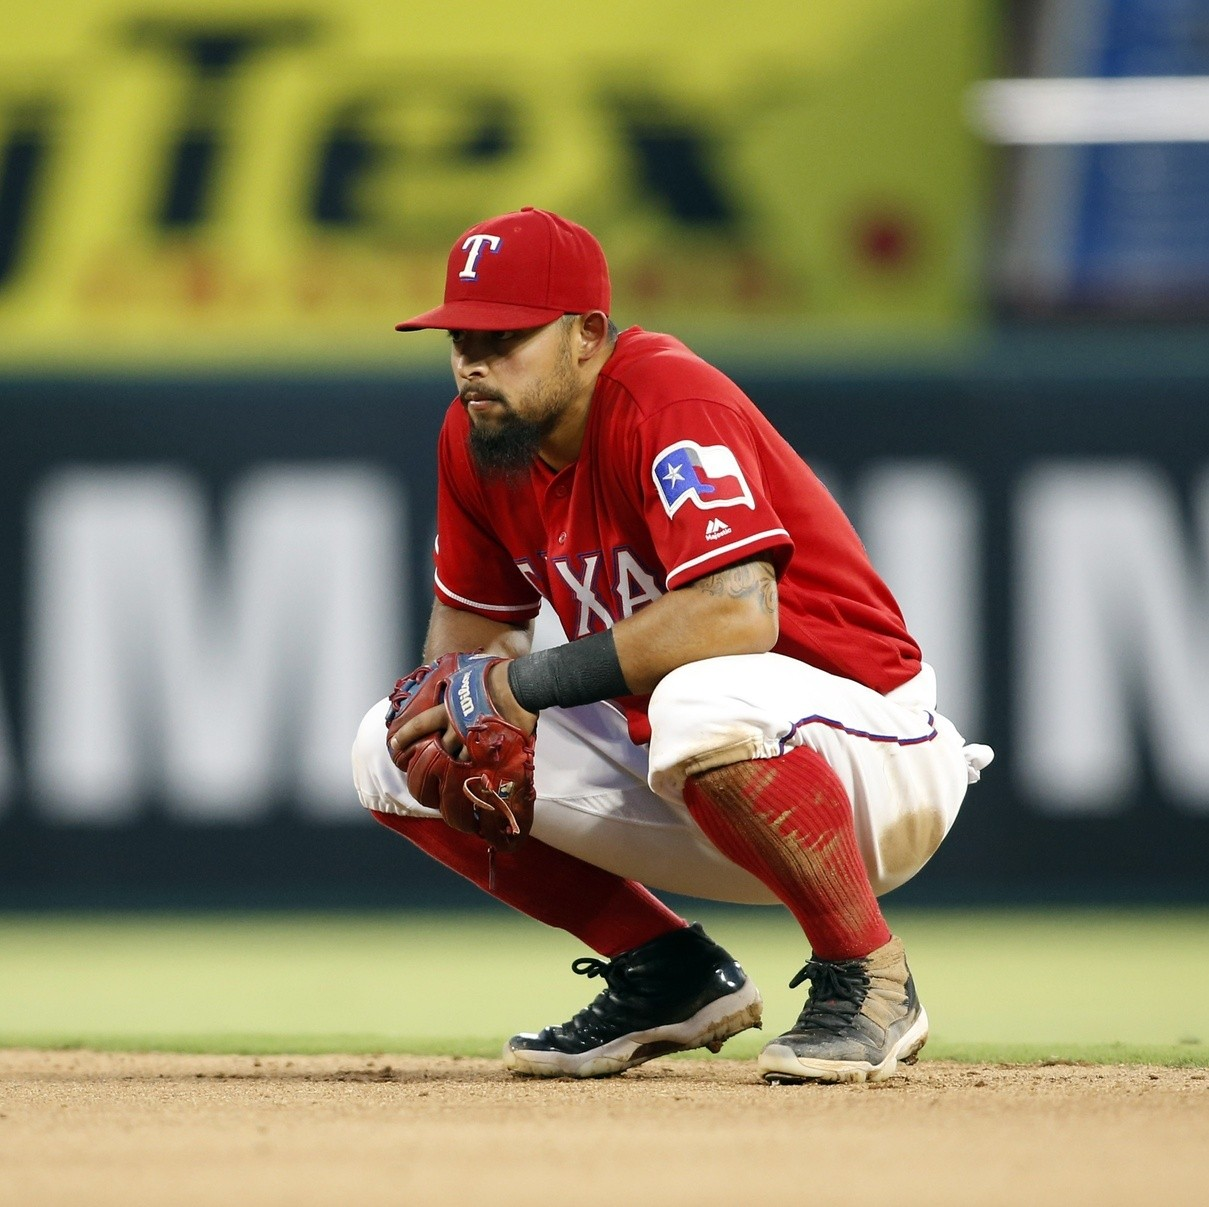 12-rounds-with-rougned-odor-the-toughest-player-in-baseball-1491319628.jpg?crop=0.66796875xw:1xh;0